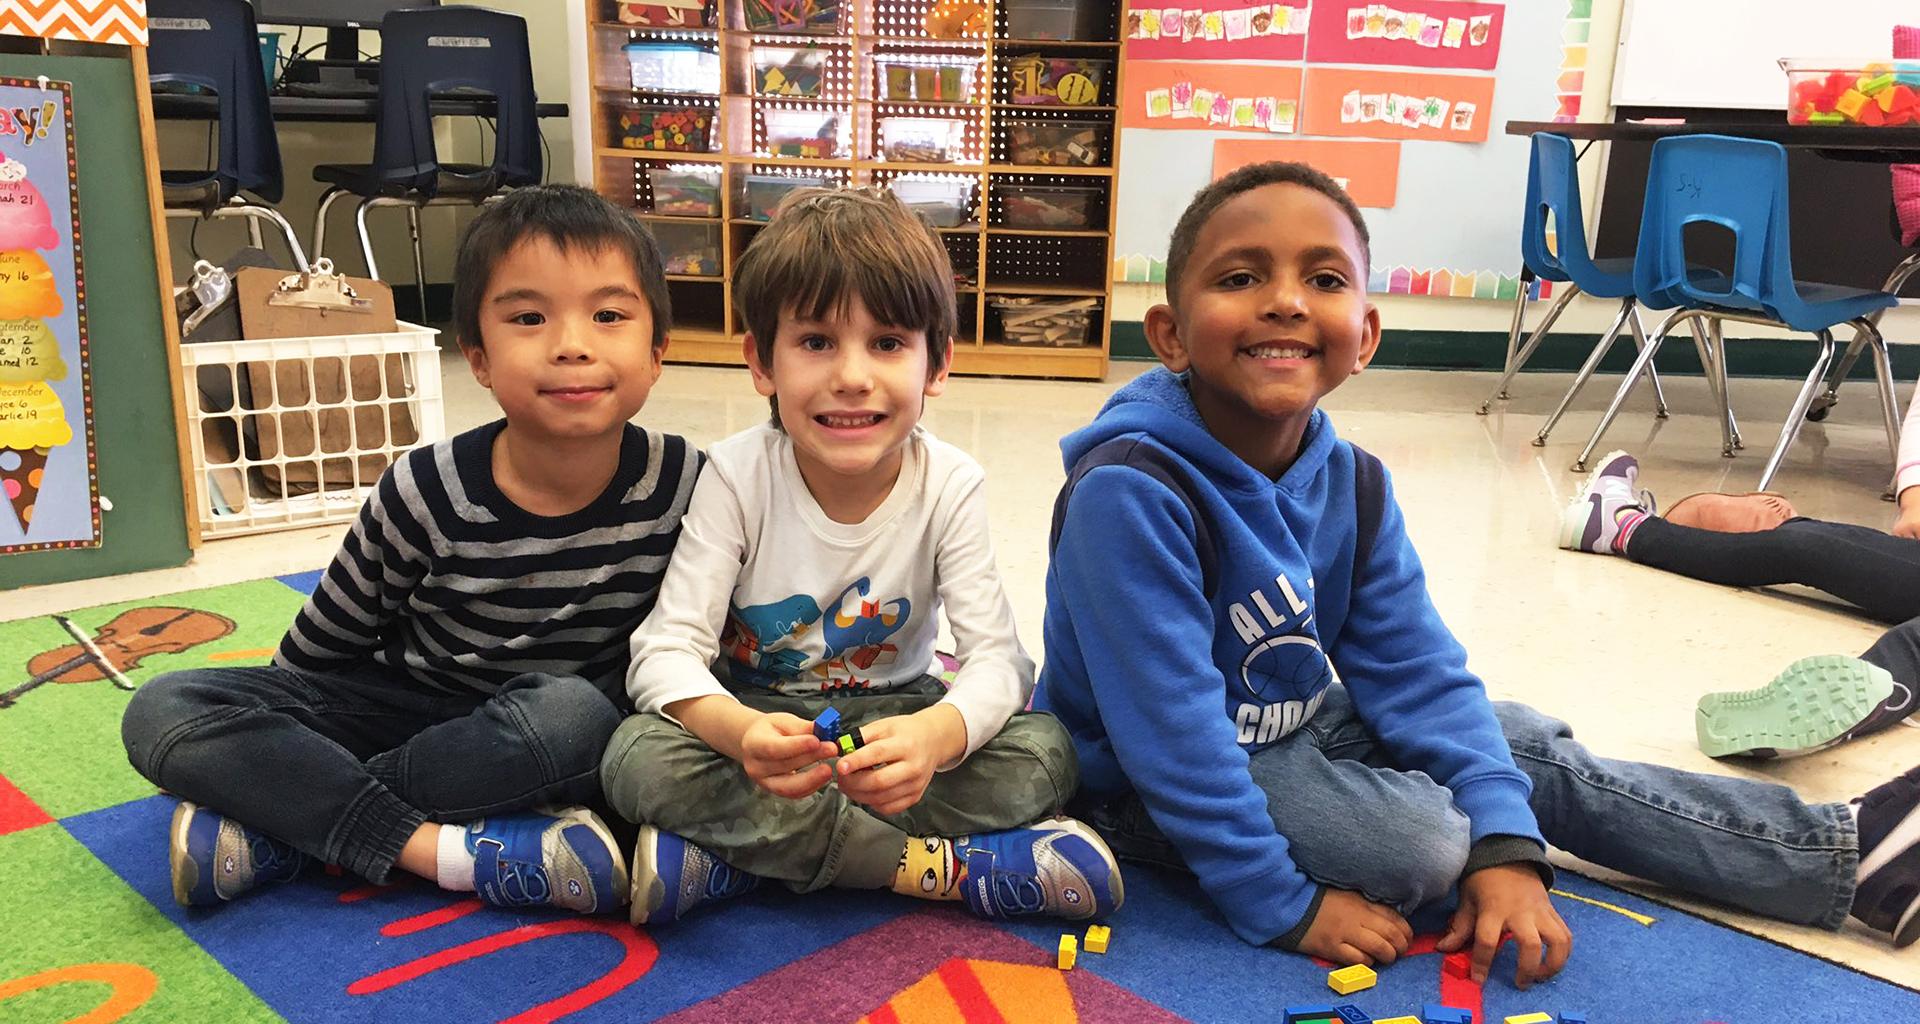 Three boys sitting on carpet working on building with blocks.